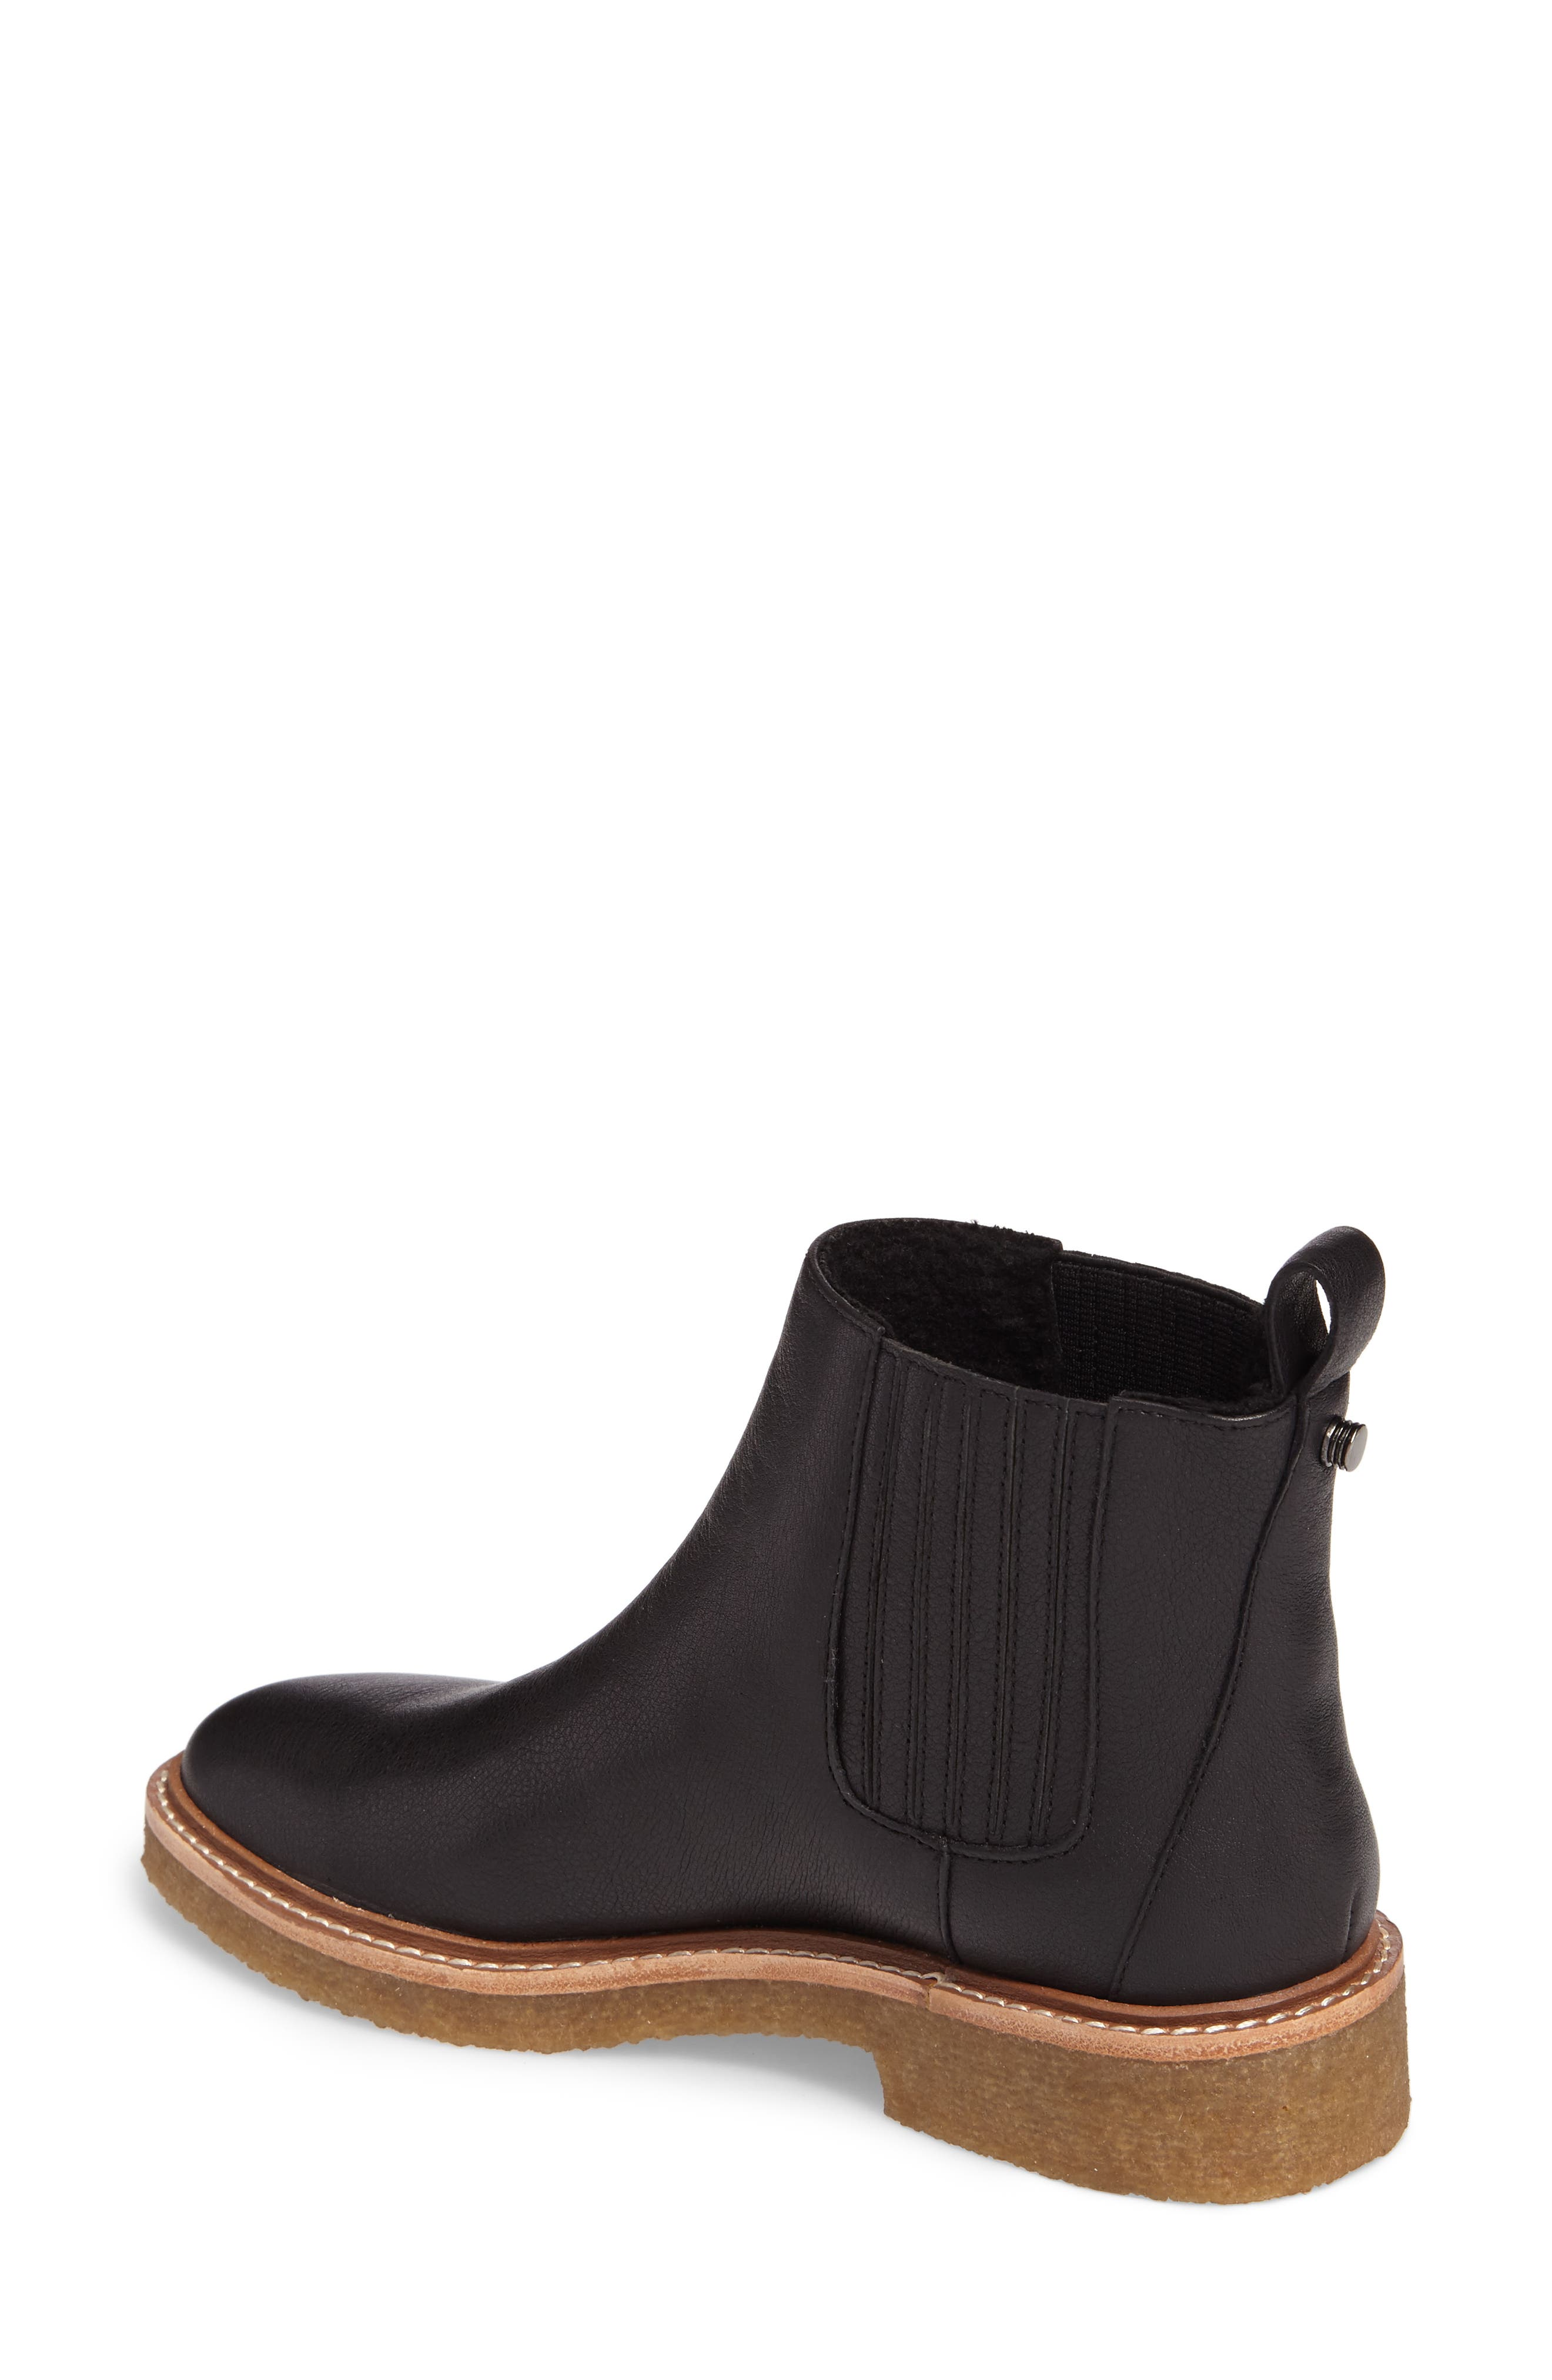 Chelsea Faux Shearling Lined Boot,                             Alternate thumbnail 2, color,                             BLACK LEATHER